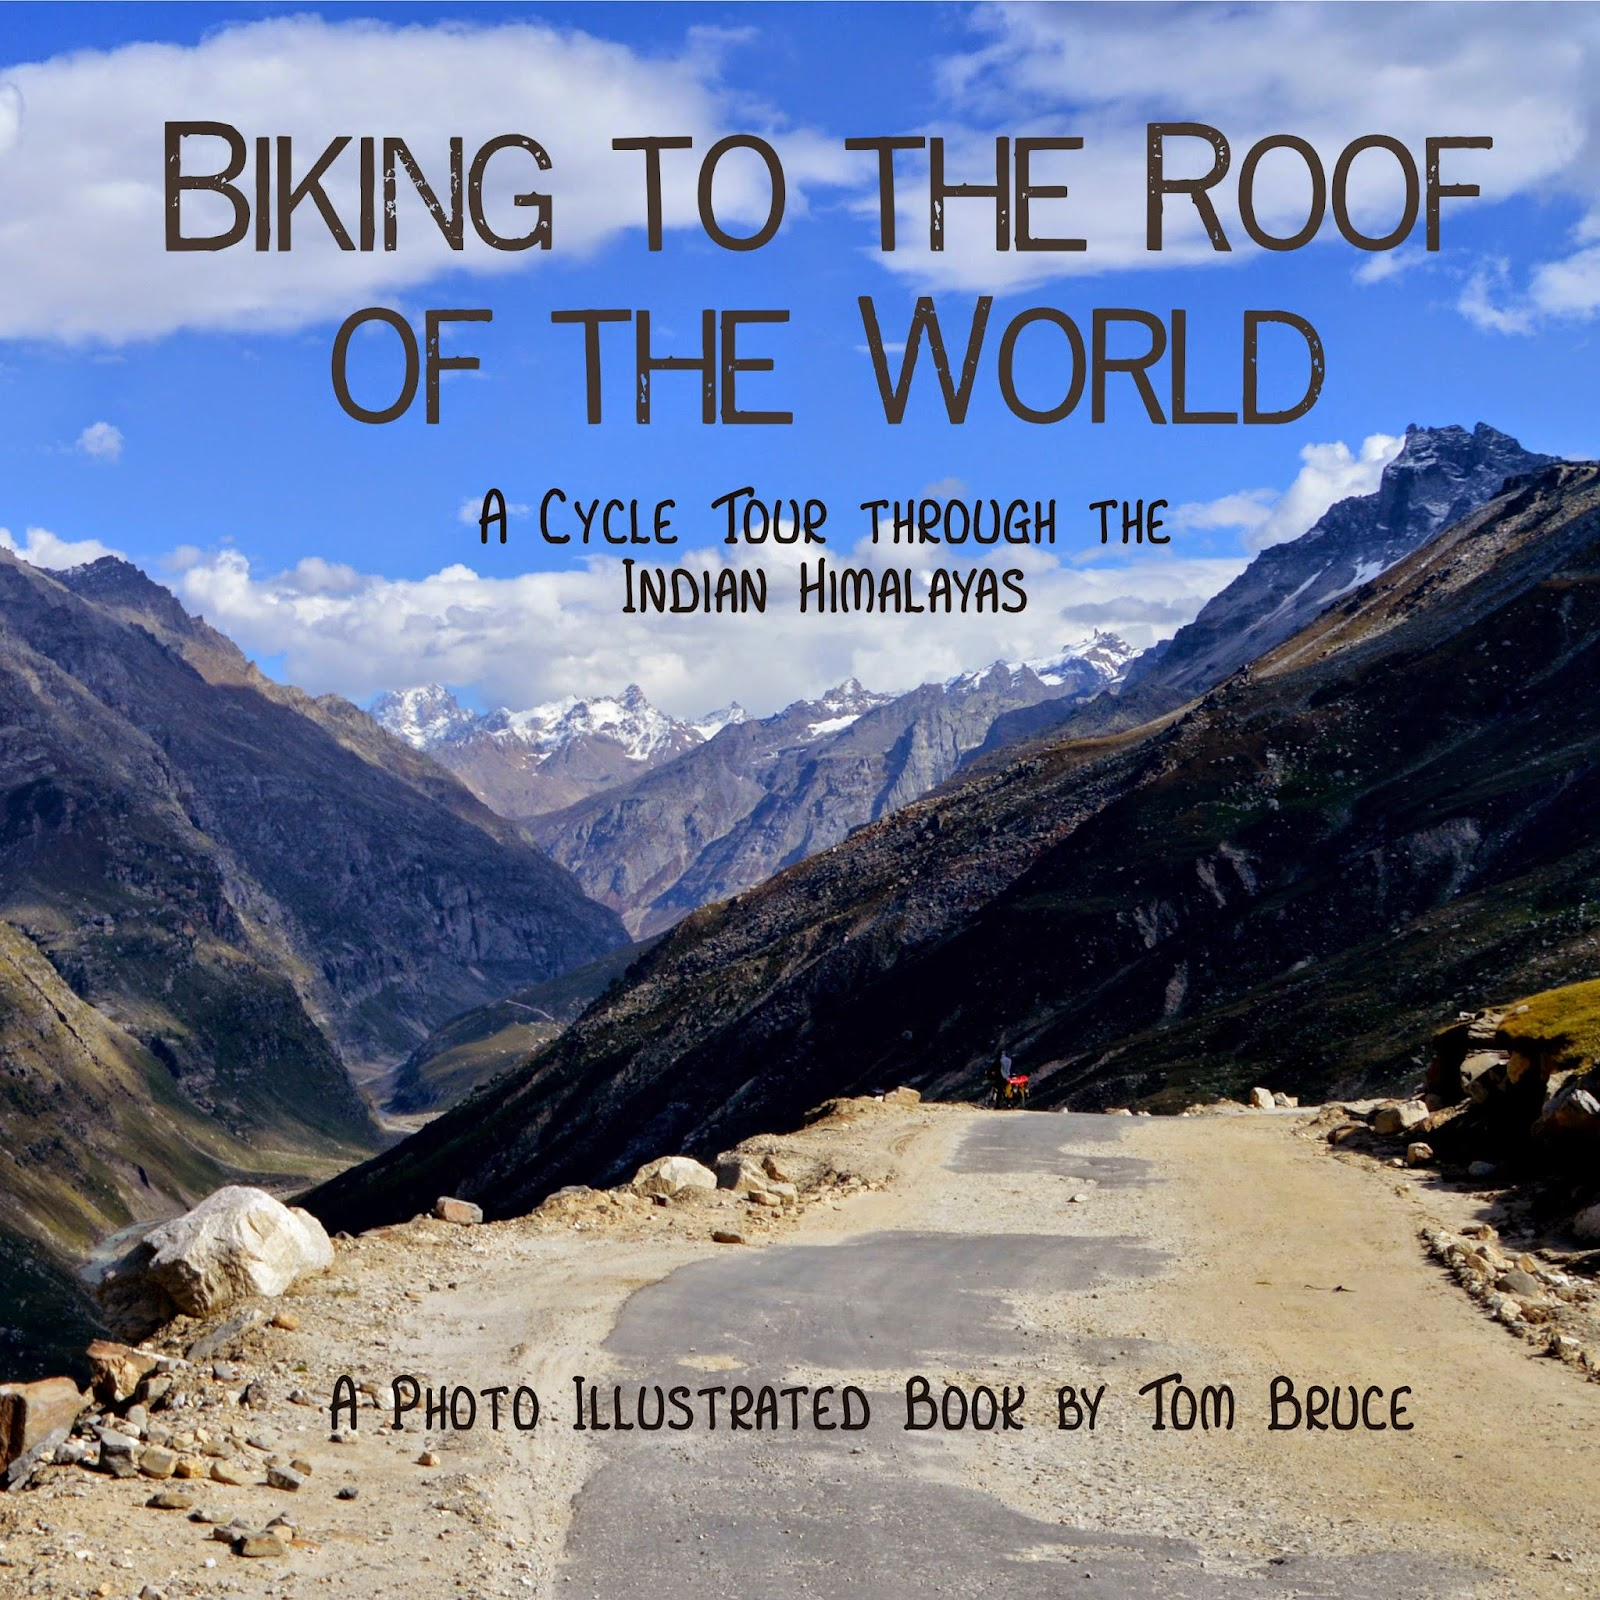 https://sites.google.com/site/tombrucecycling/adventures/indian-himalaya-tour